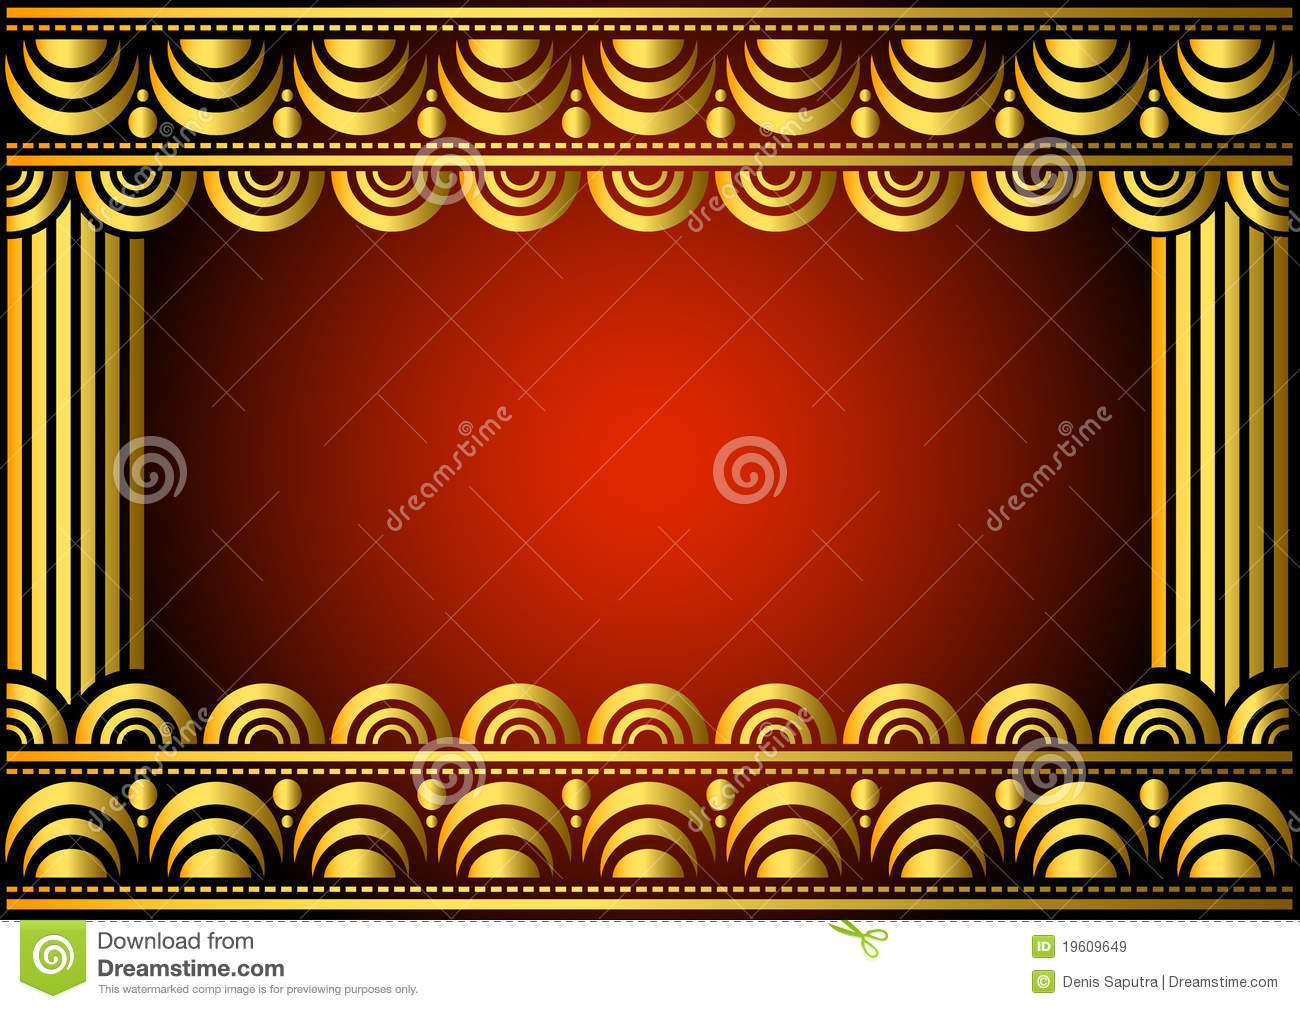 Frame stage stock vector. Illustration of decorative - 19609649